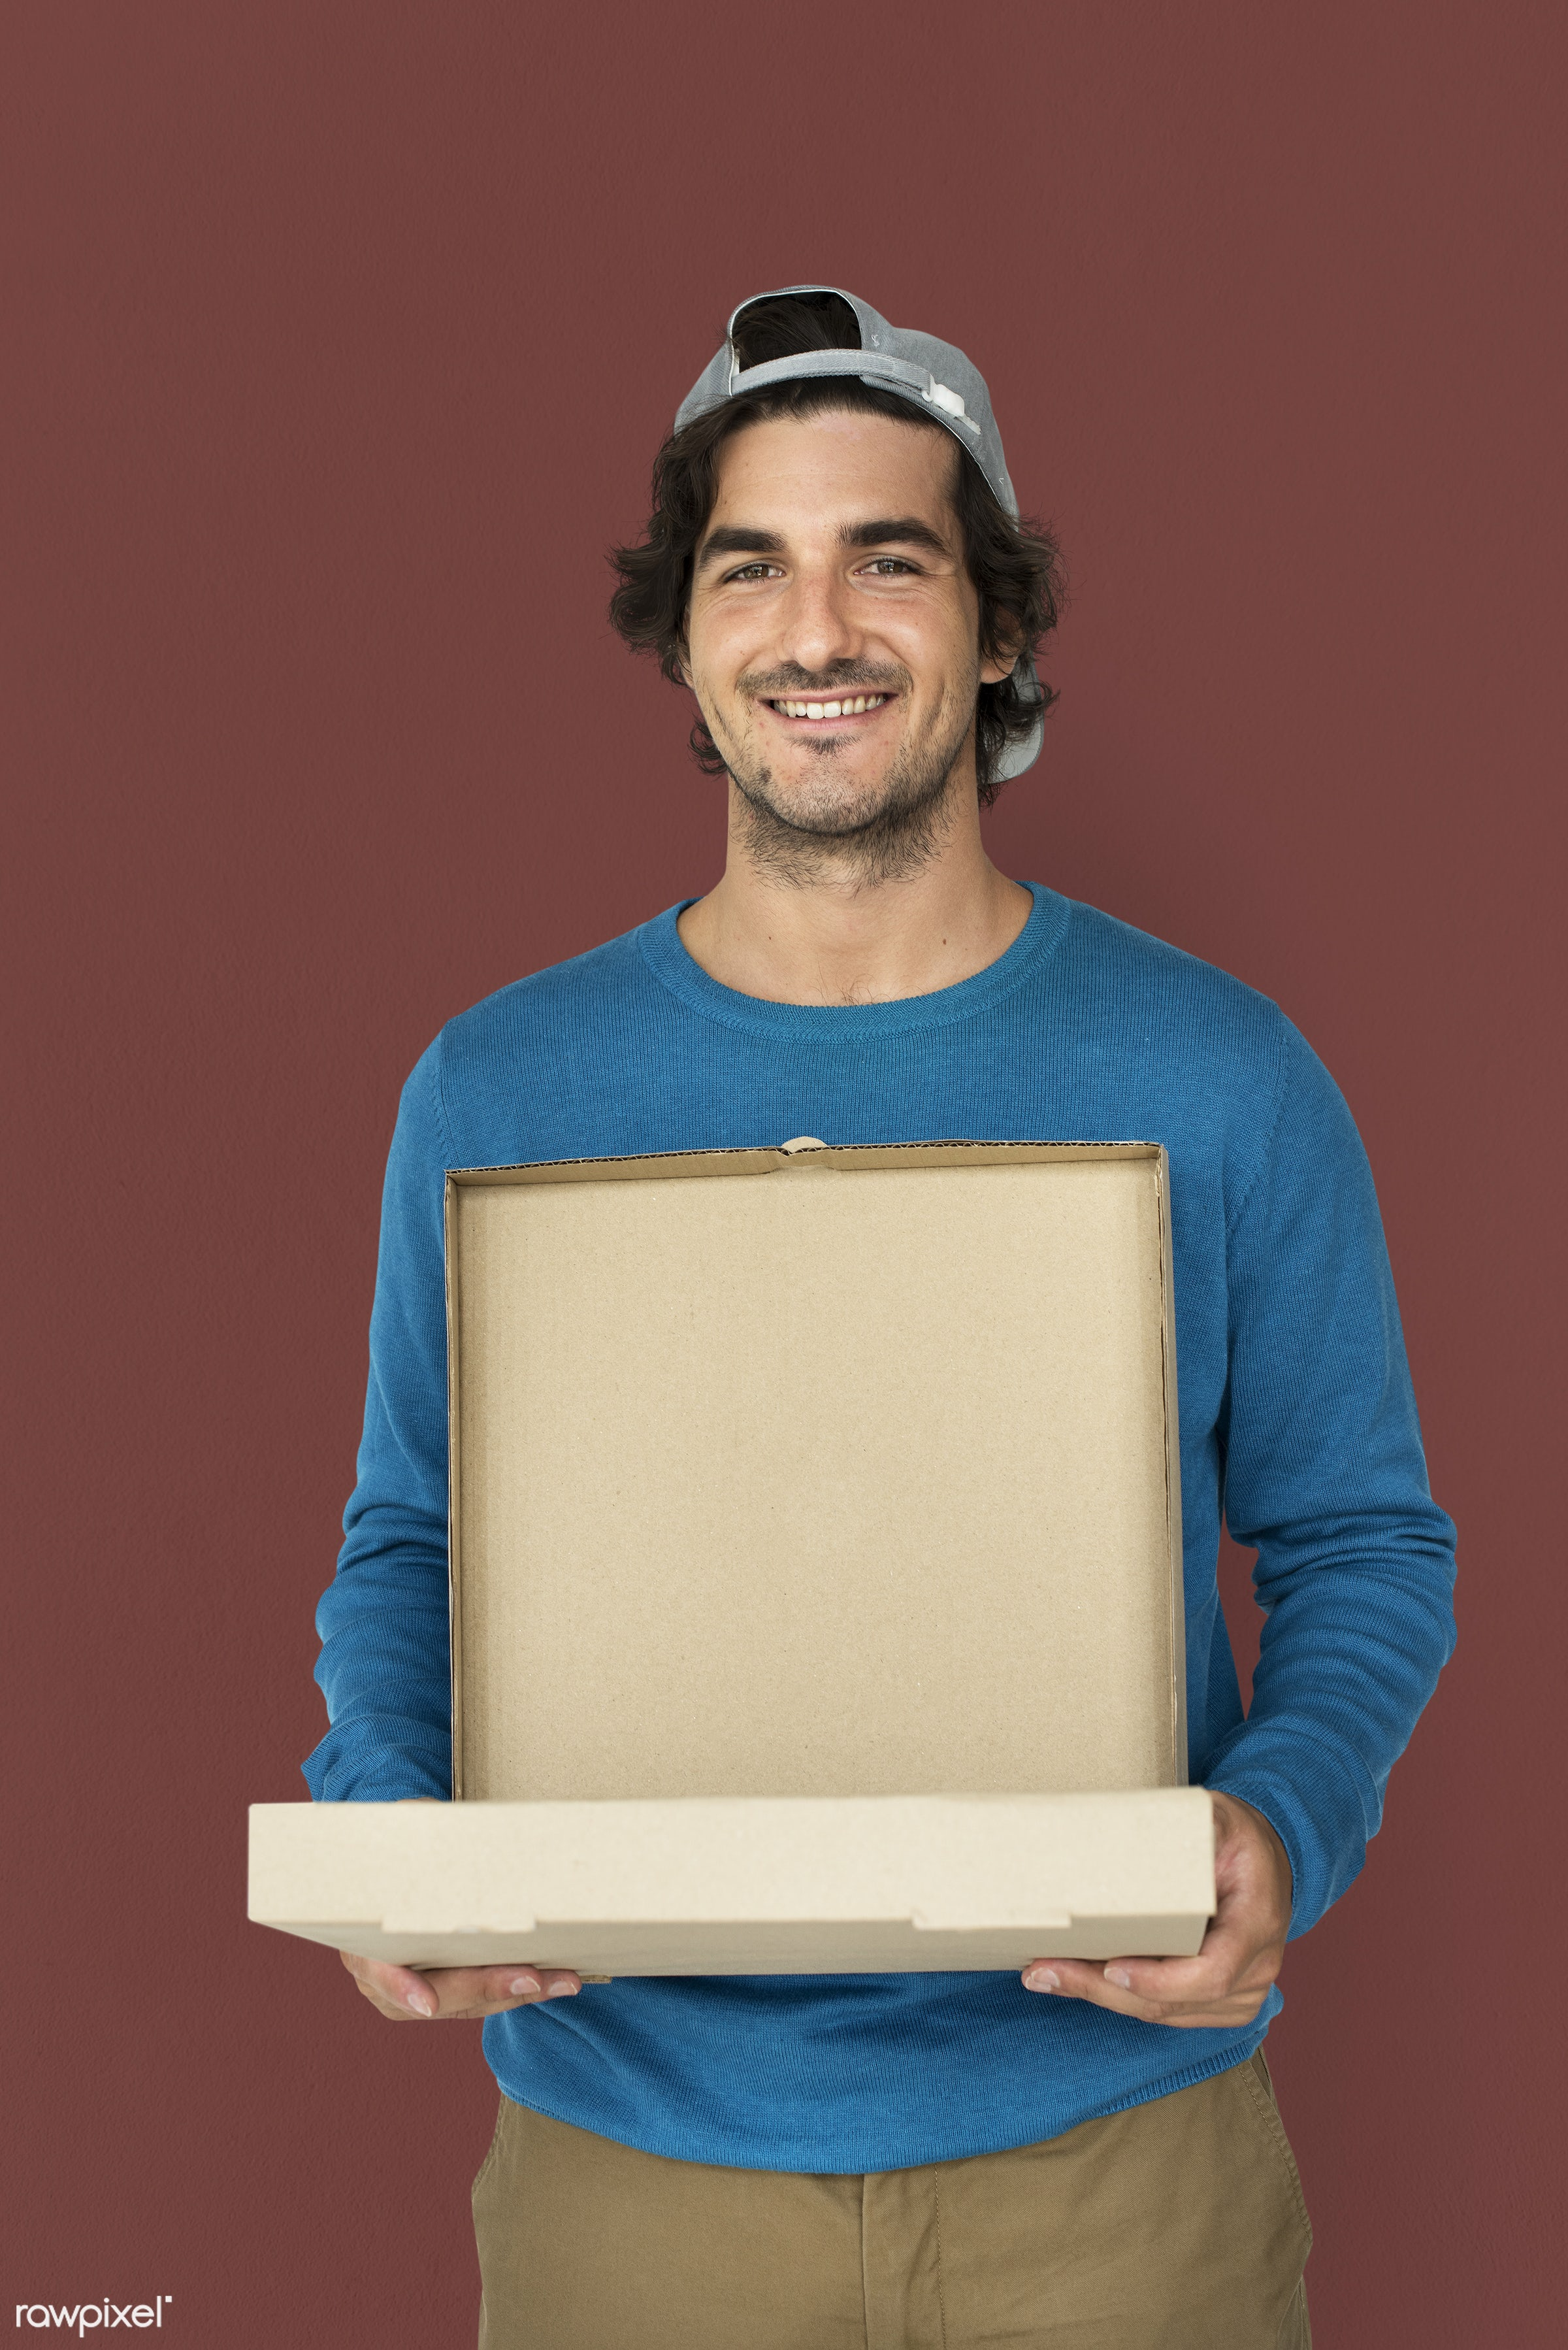 adult, background, box, brown, carrying, casual, cheerful, delivering, delivery, emotion, emotional, enjoyment, expression,...